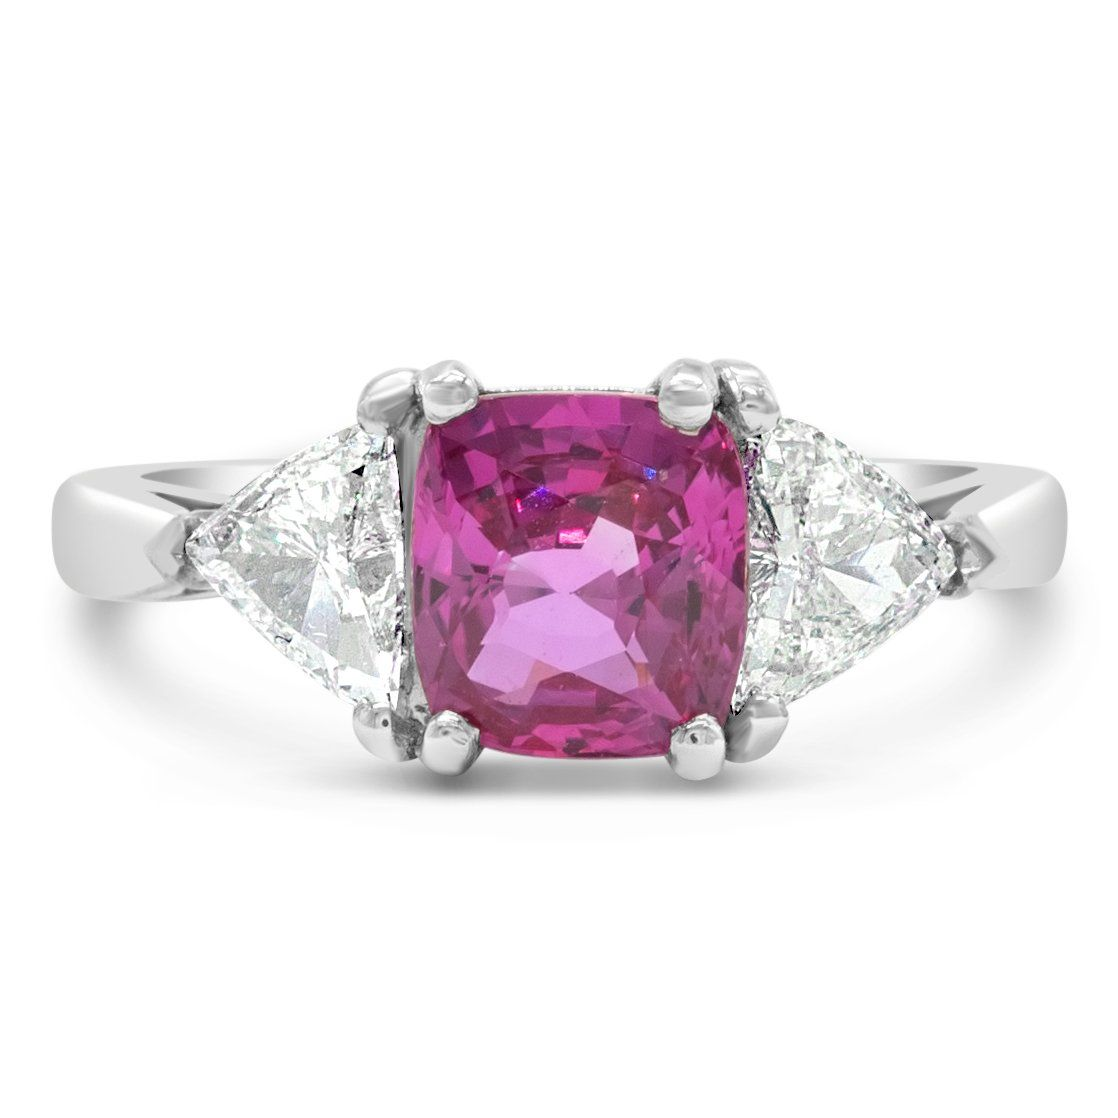 Vintage 2.35ct Pink Sapphire Three Stone Ring with Trillion Diamond Sides Rings Good Stone Inc